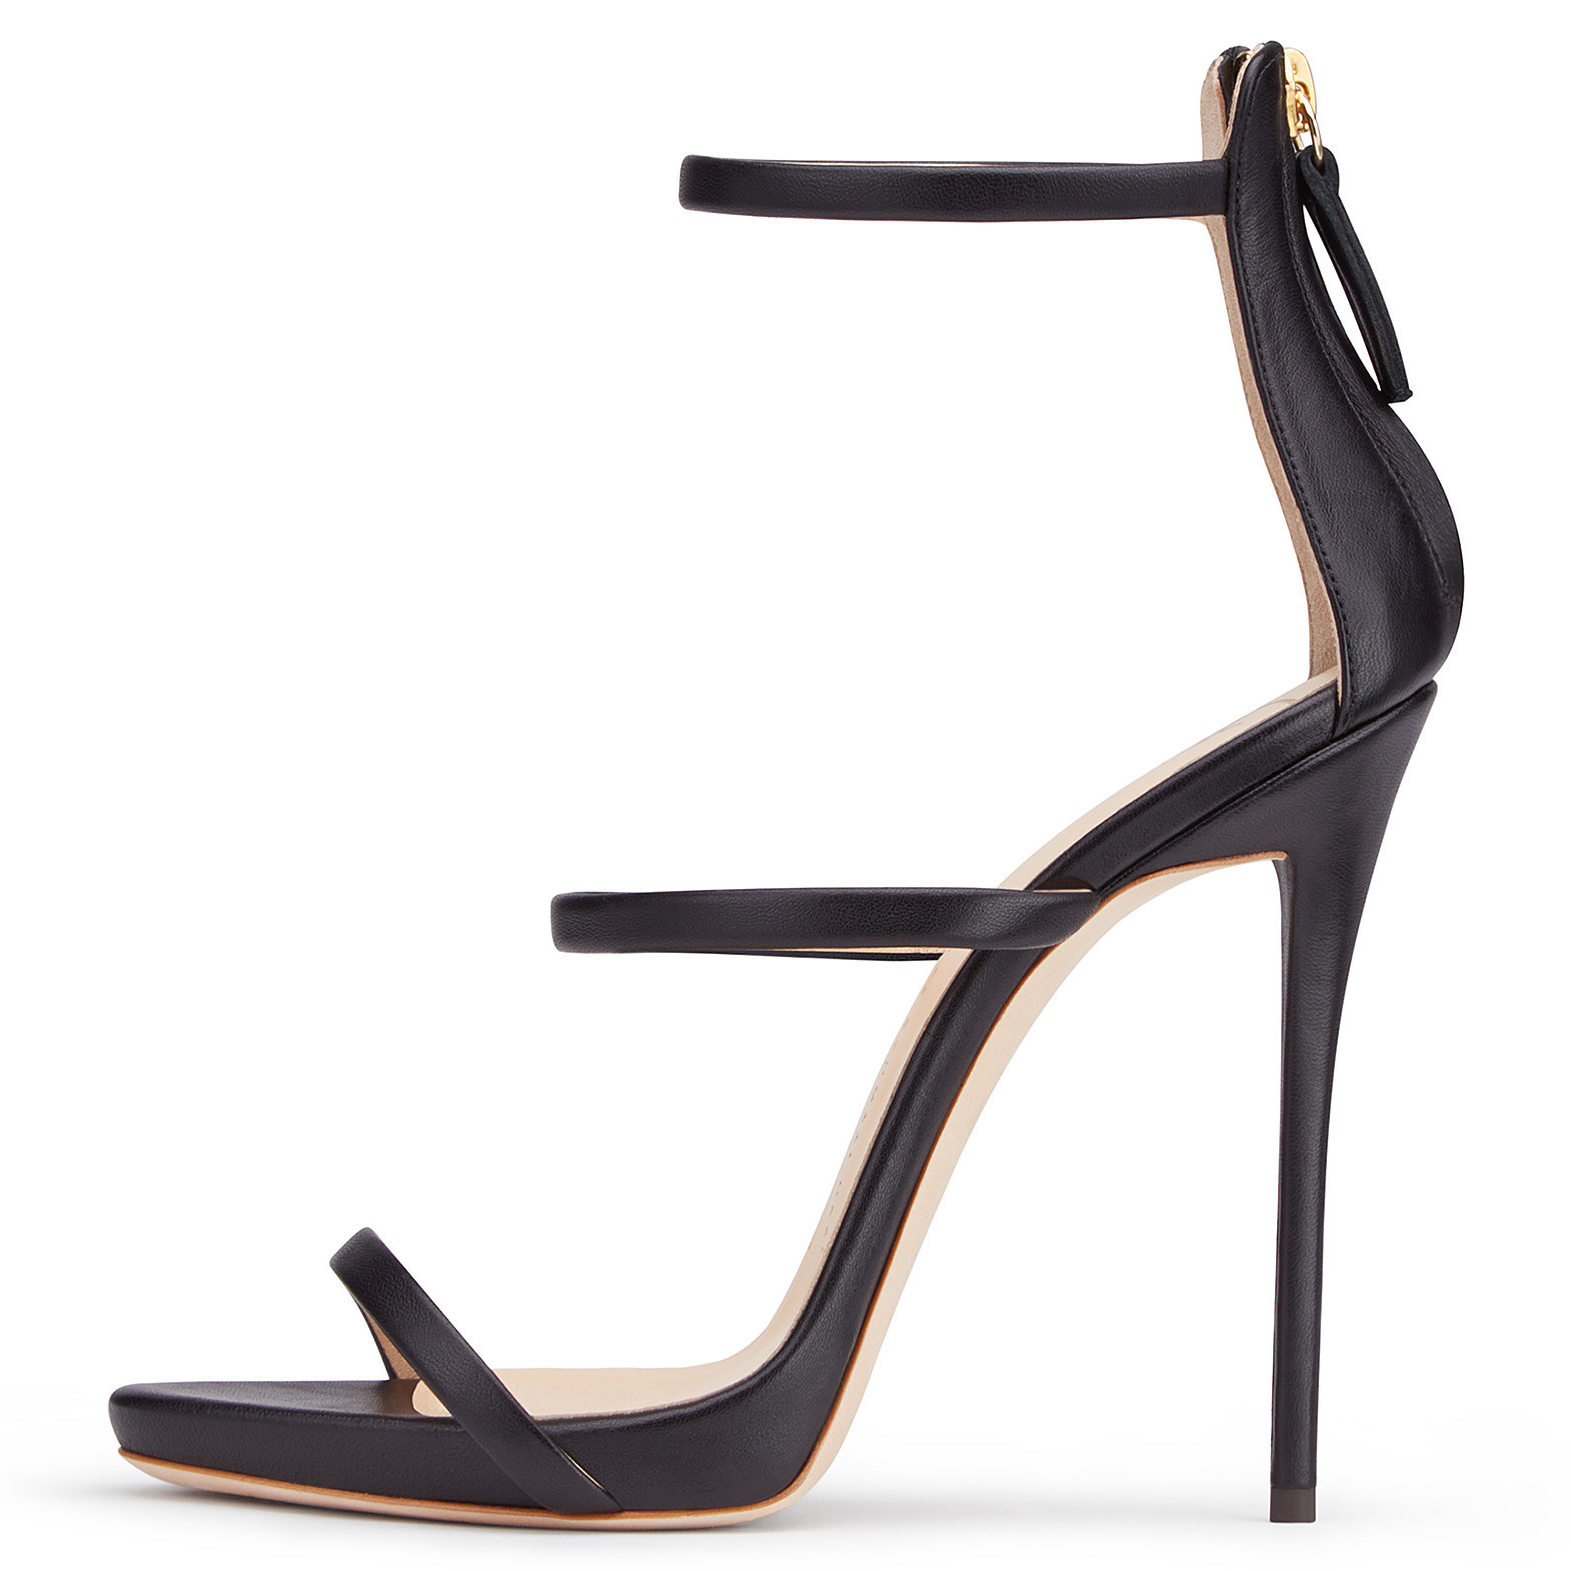 Factory Classic Party Heels Basic Evening Dress Shoes Summer Ladies Platform Heeled Sandals Women High Heel Strappy Sandal